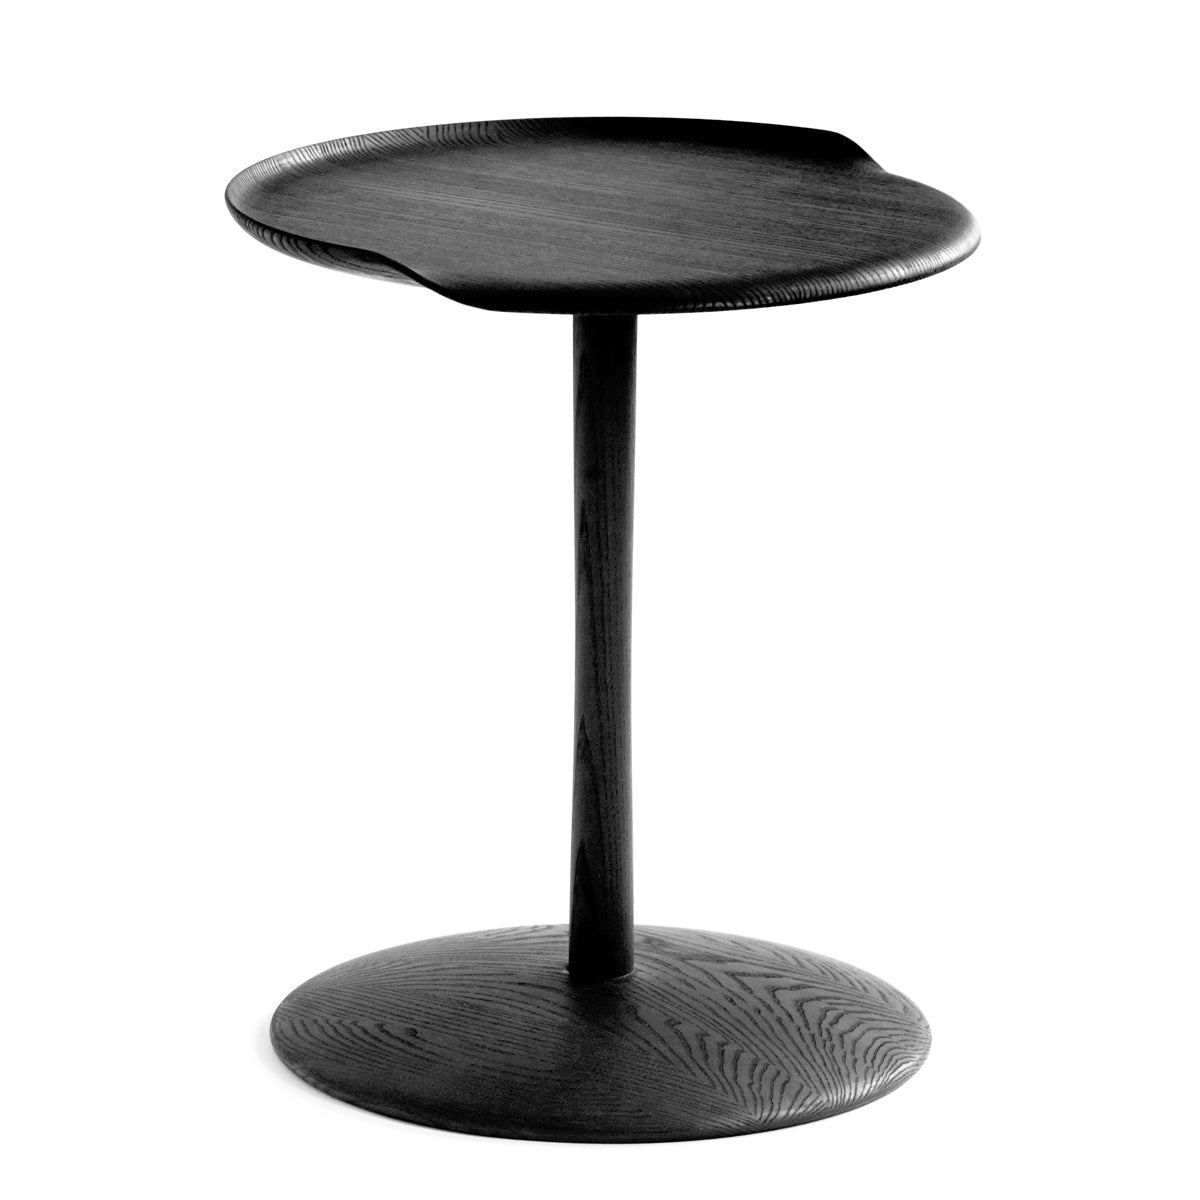 pedestal asp hcf black tgf t p base poseur twin table gf